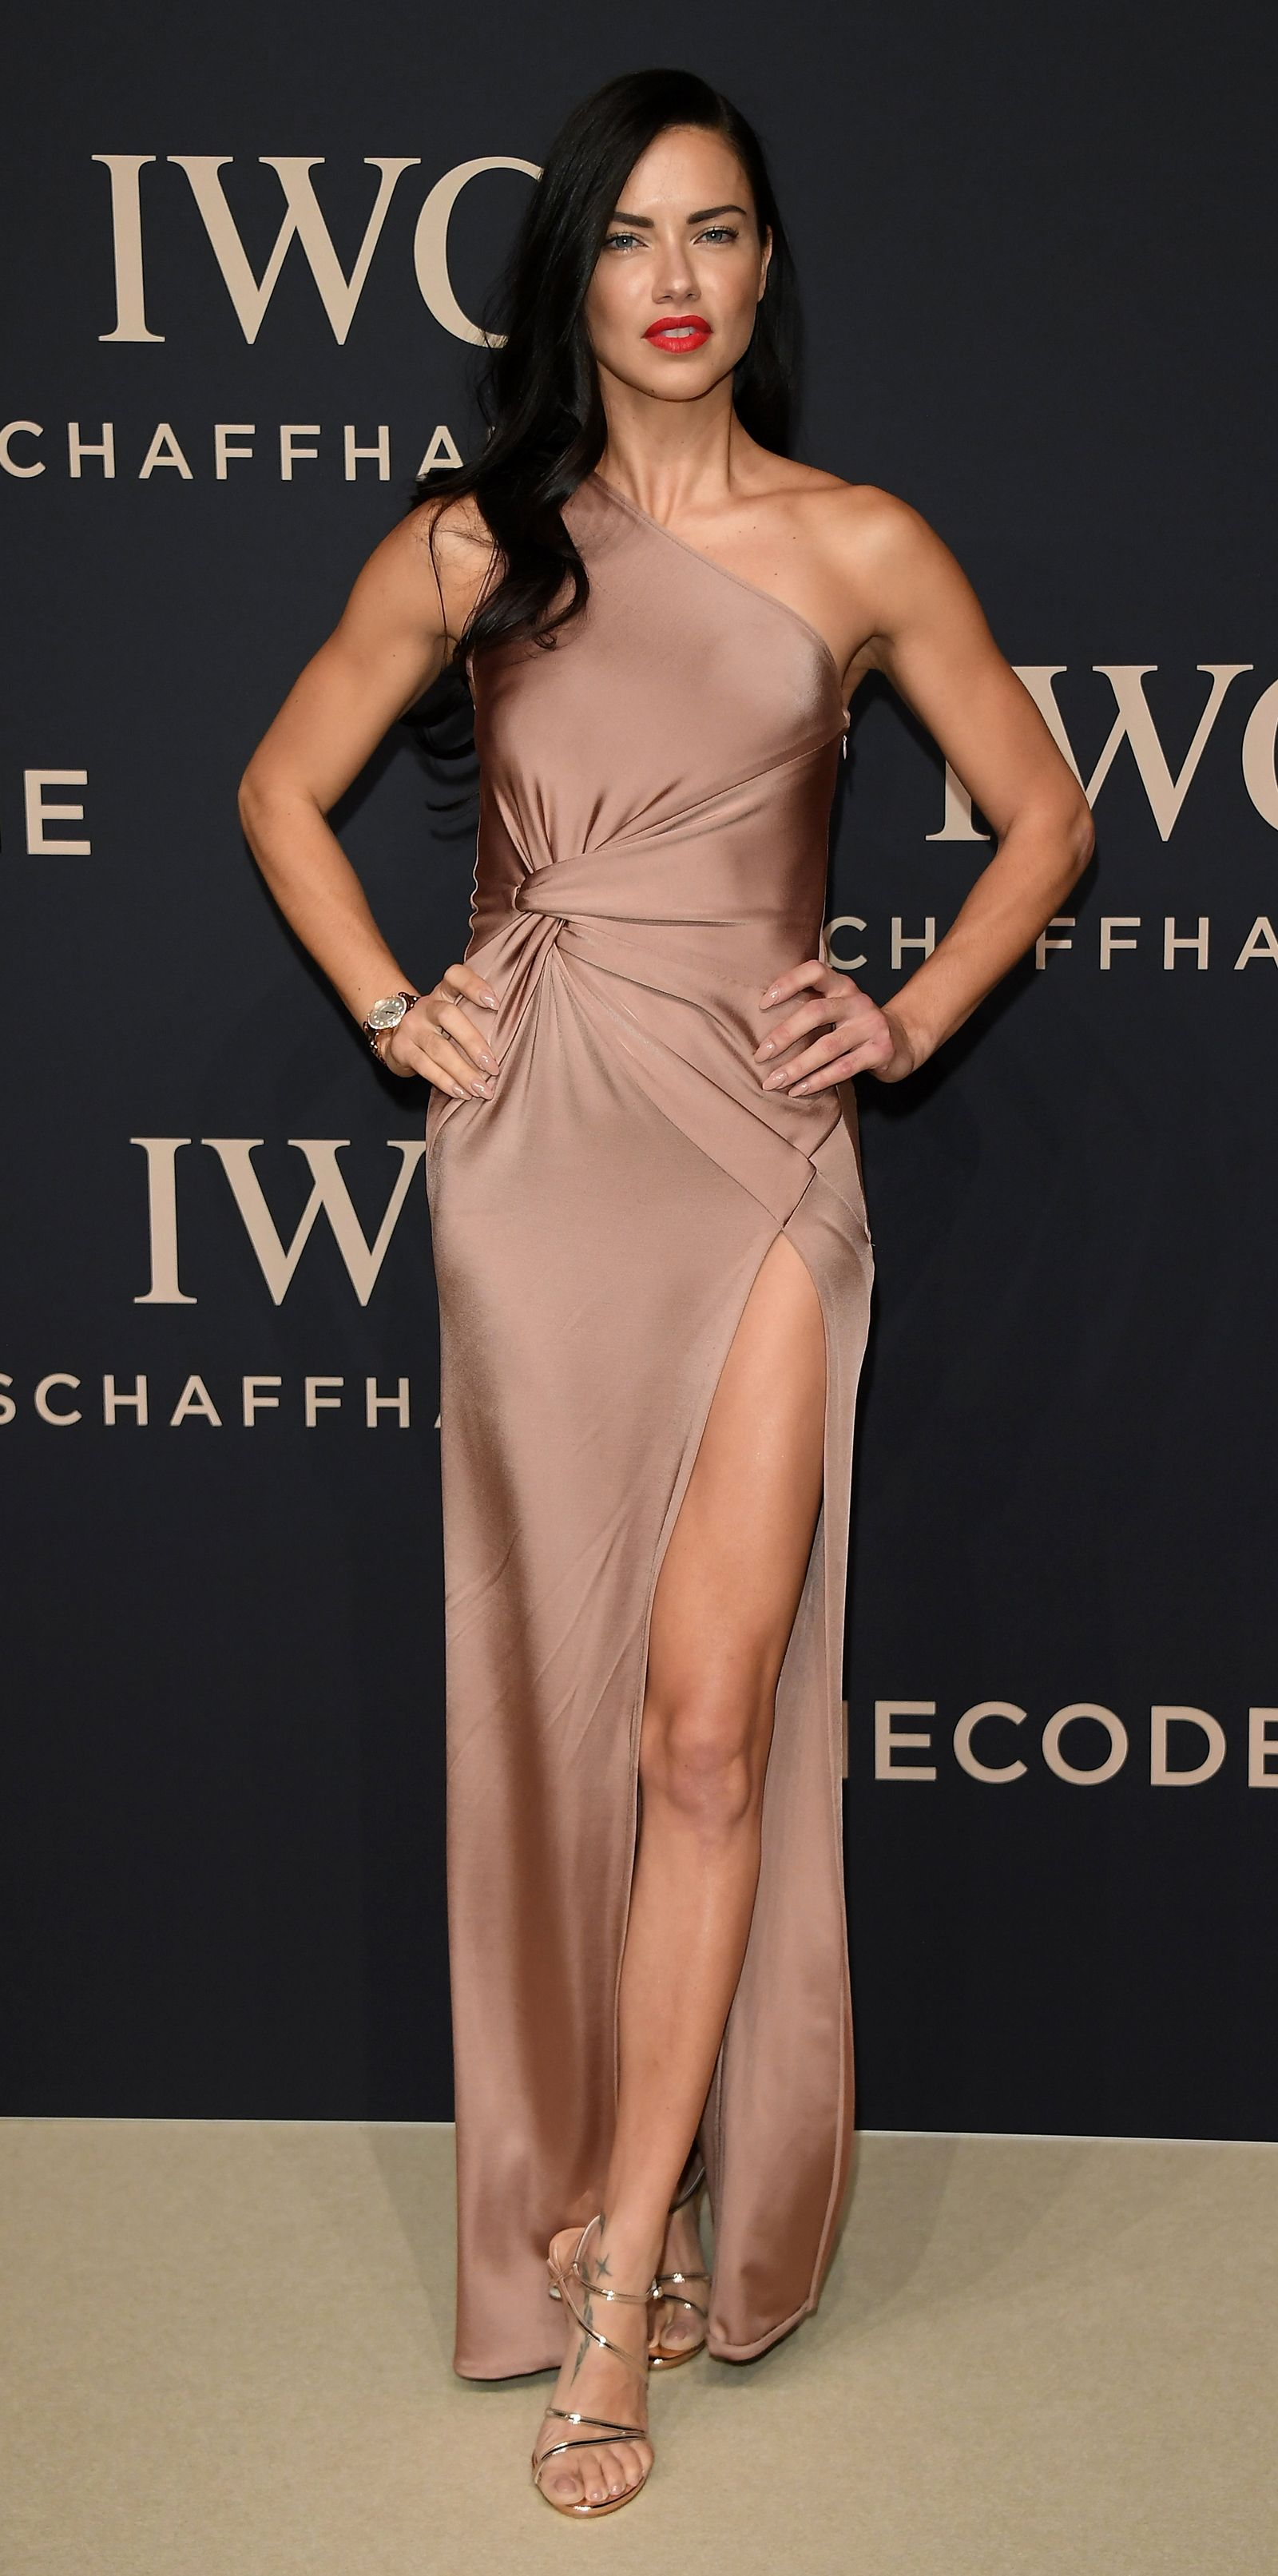 Adriana Lima brought supermodel-dom to the IWC Schaffhausen  Decoding the  Beauty of Time  Gala Dinner in a sexy one-shoulder b79d37f6c366